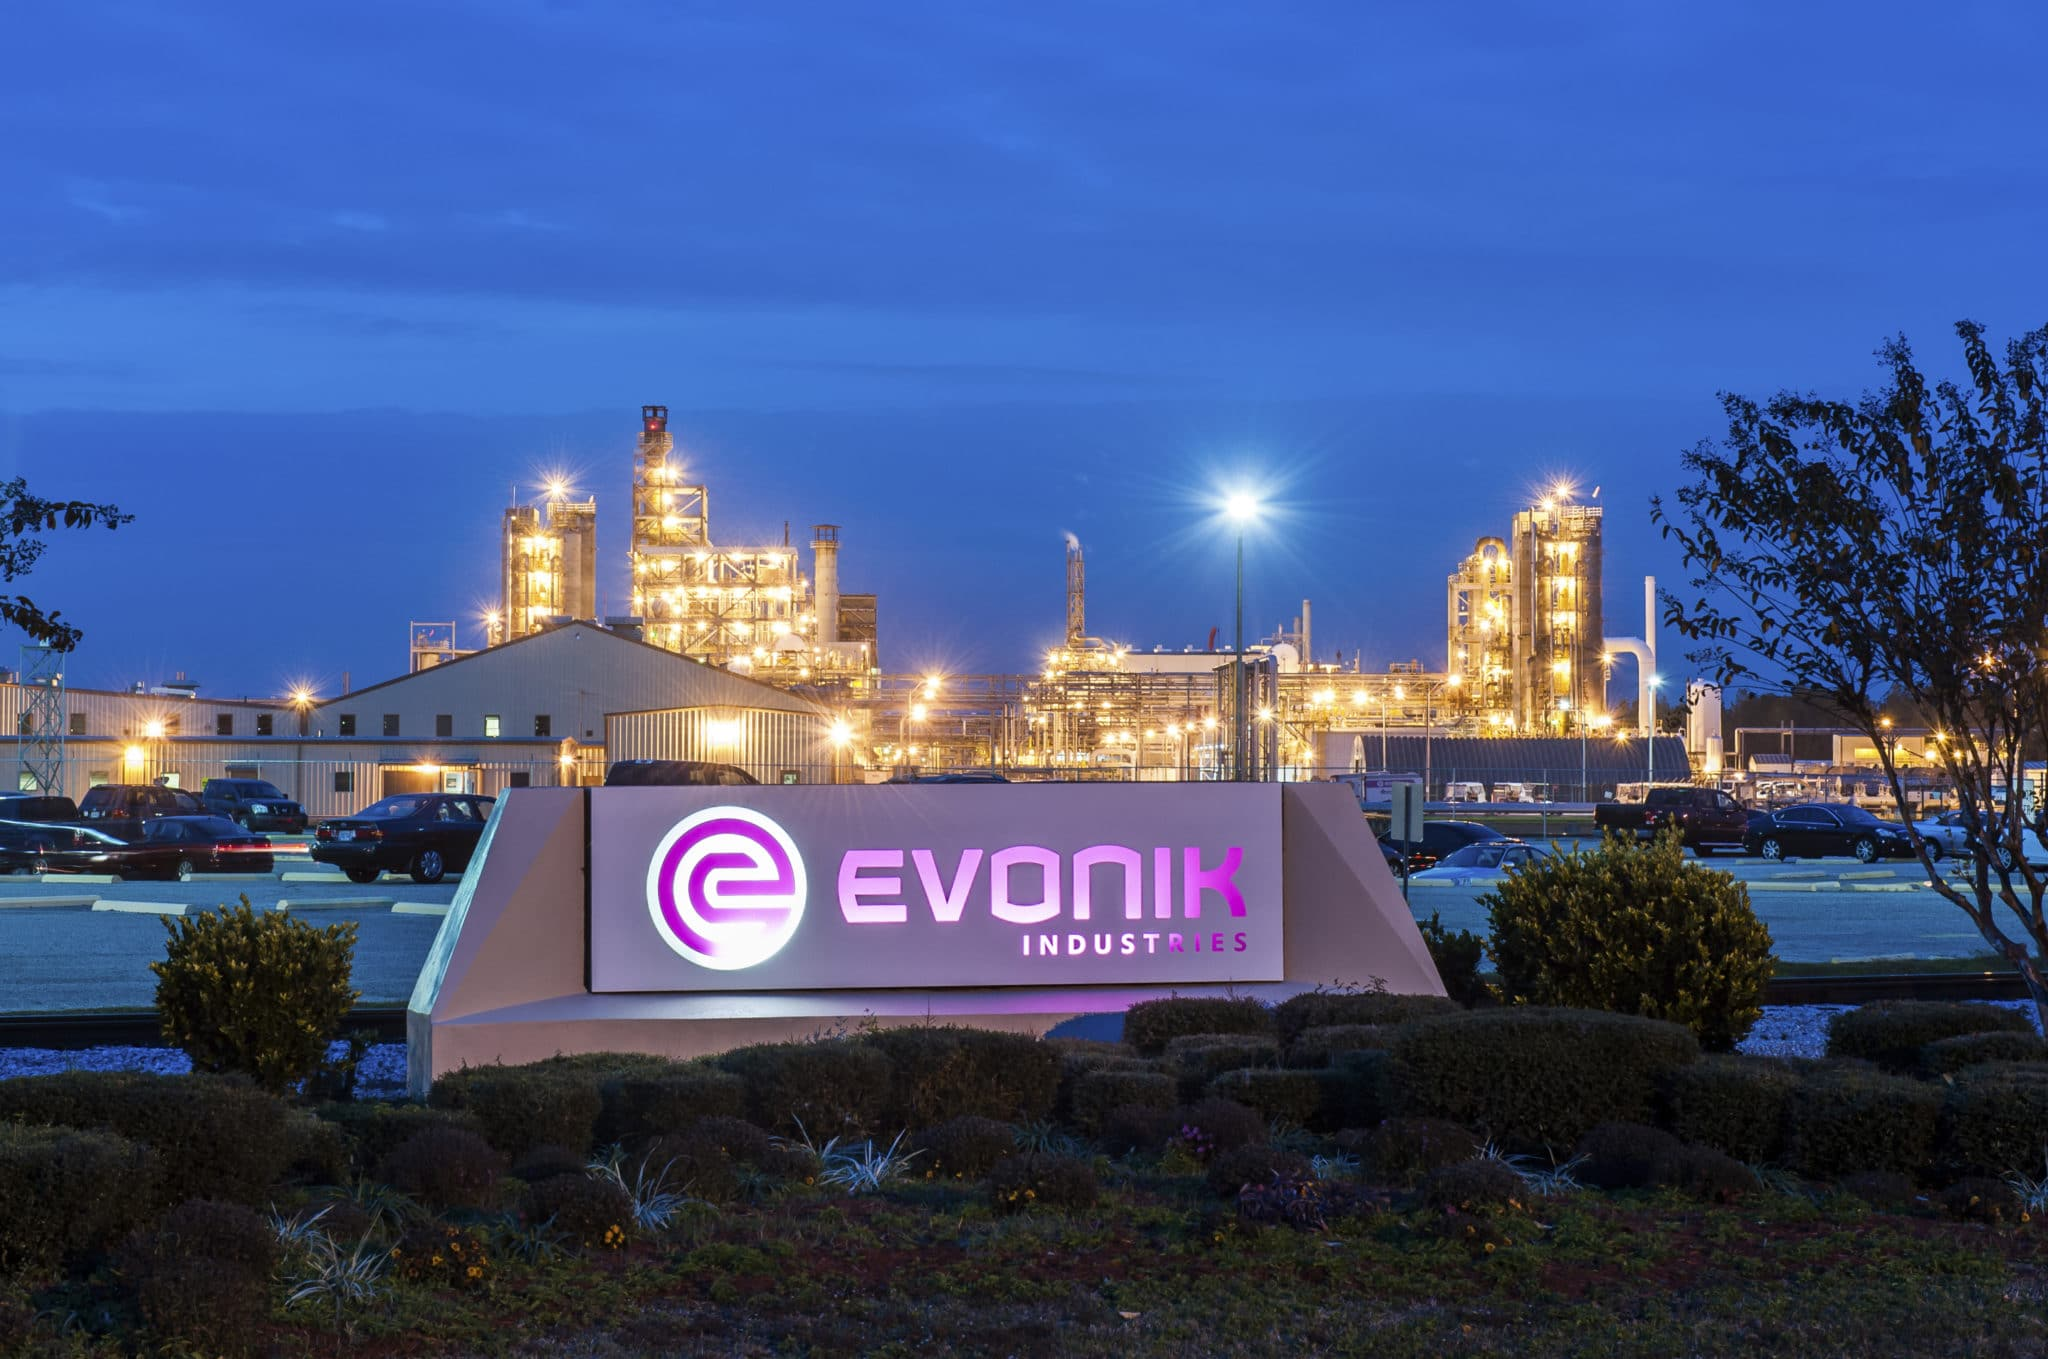 From digital transformation roadmap to global practice. Evonik drives digitization at global production sites with Testify.